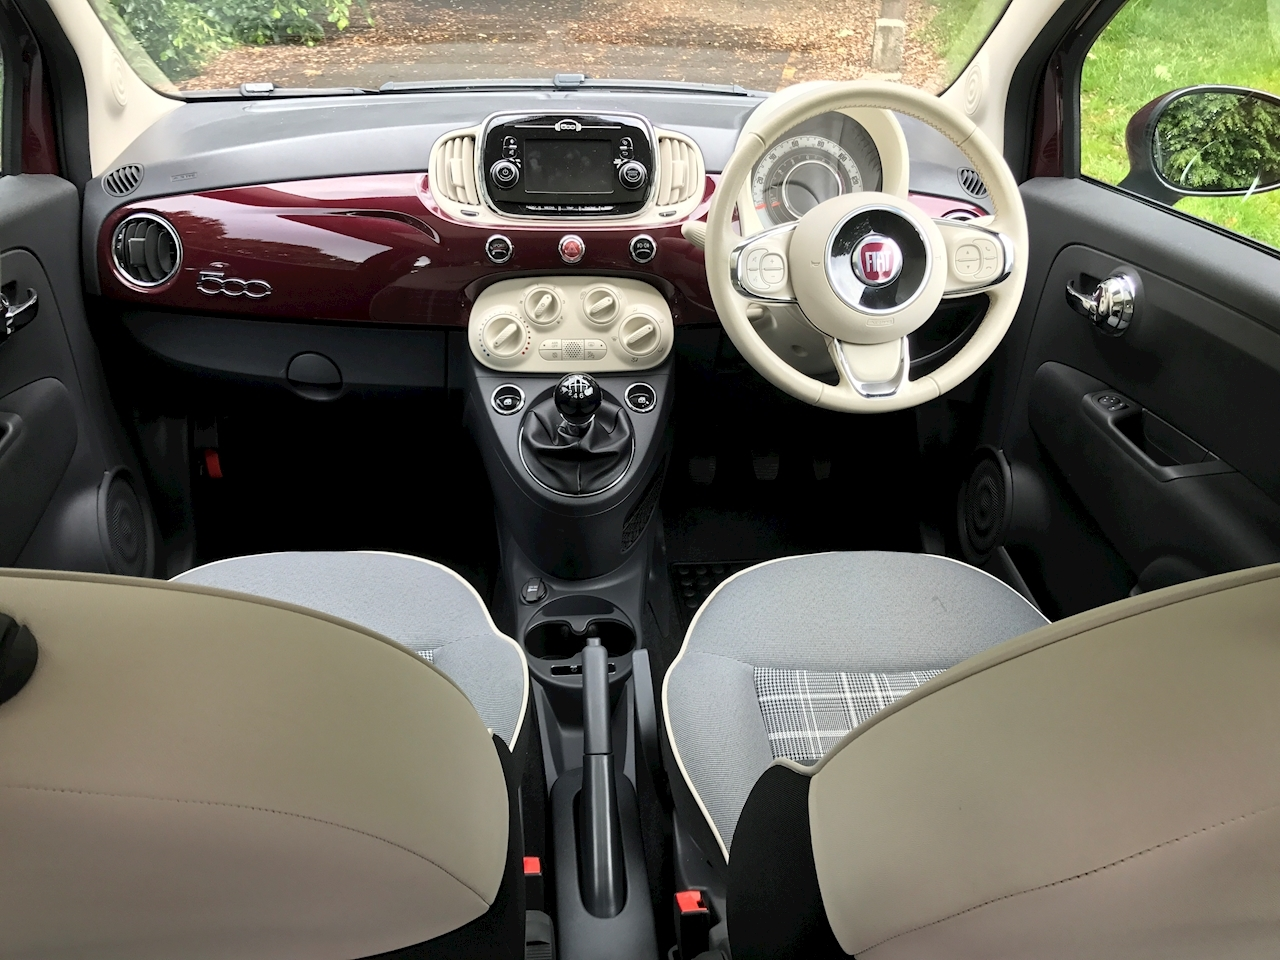 Fiat 500 0.9 Twinair Lounge 2016(16) - Large 5